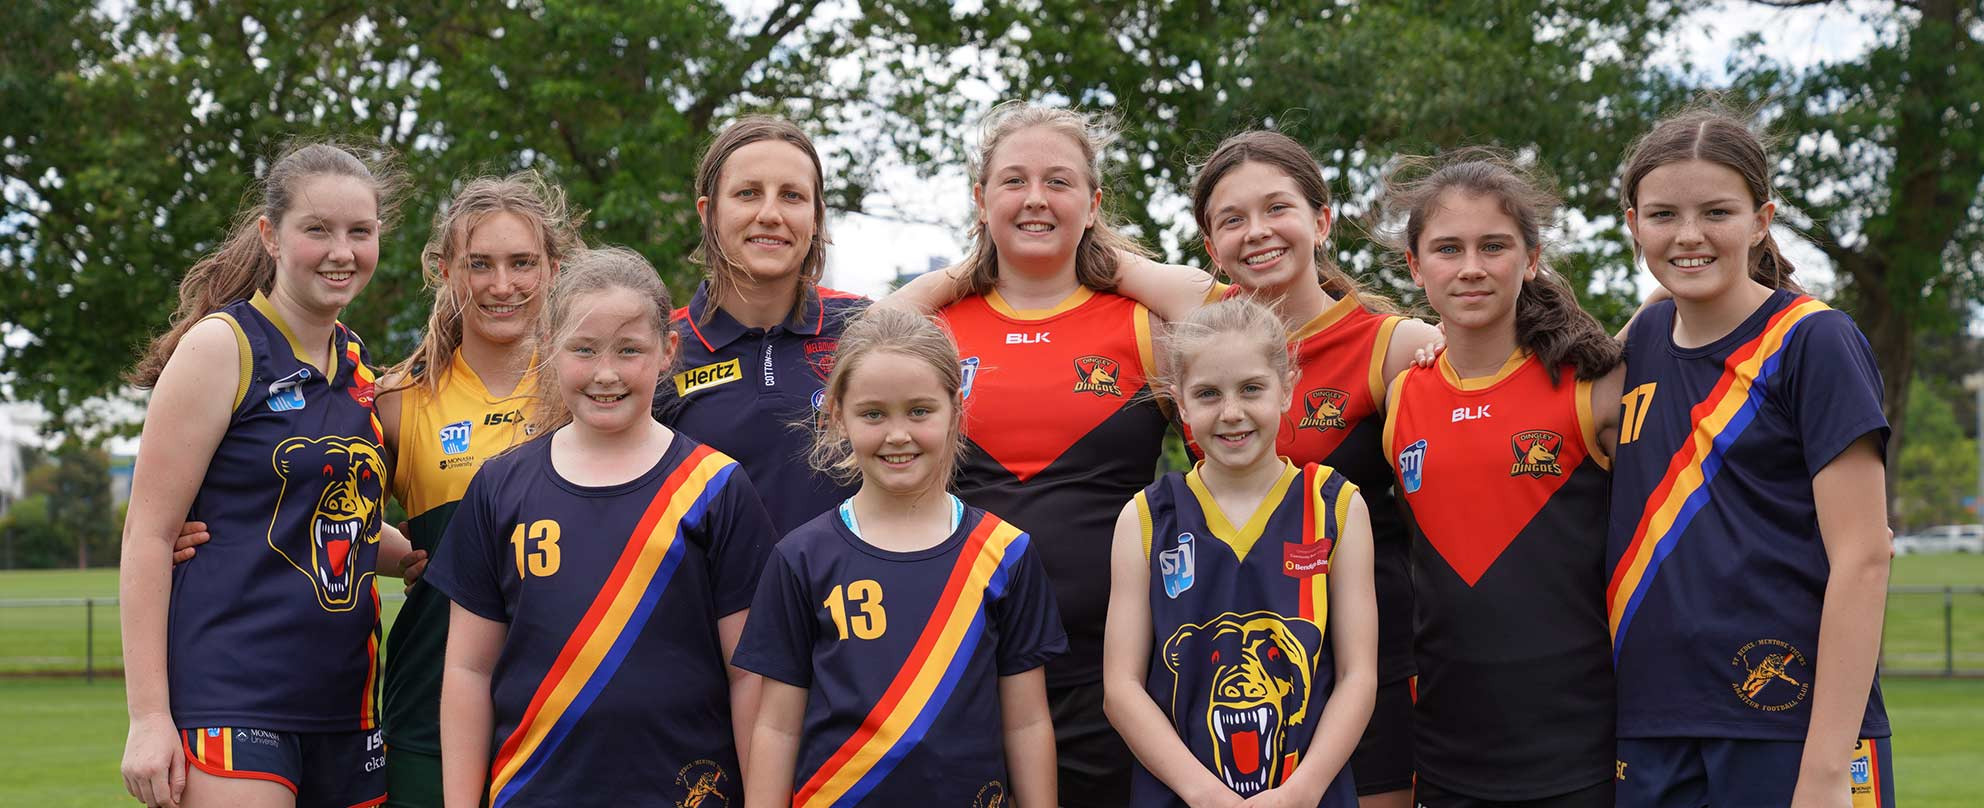 Demons AFLW player Karen Paxman (third from left, back) with girls from South Metro Junior Football League, photo: Melbourne Football Club